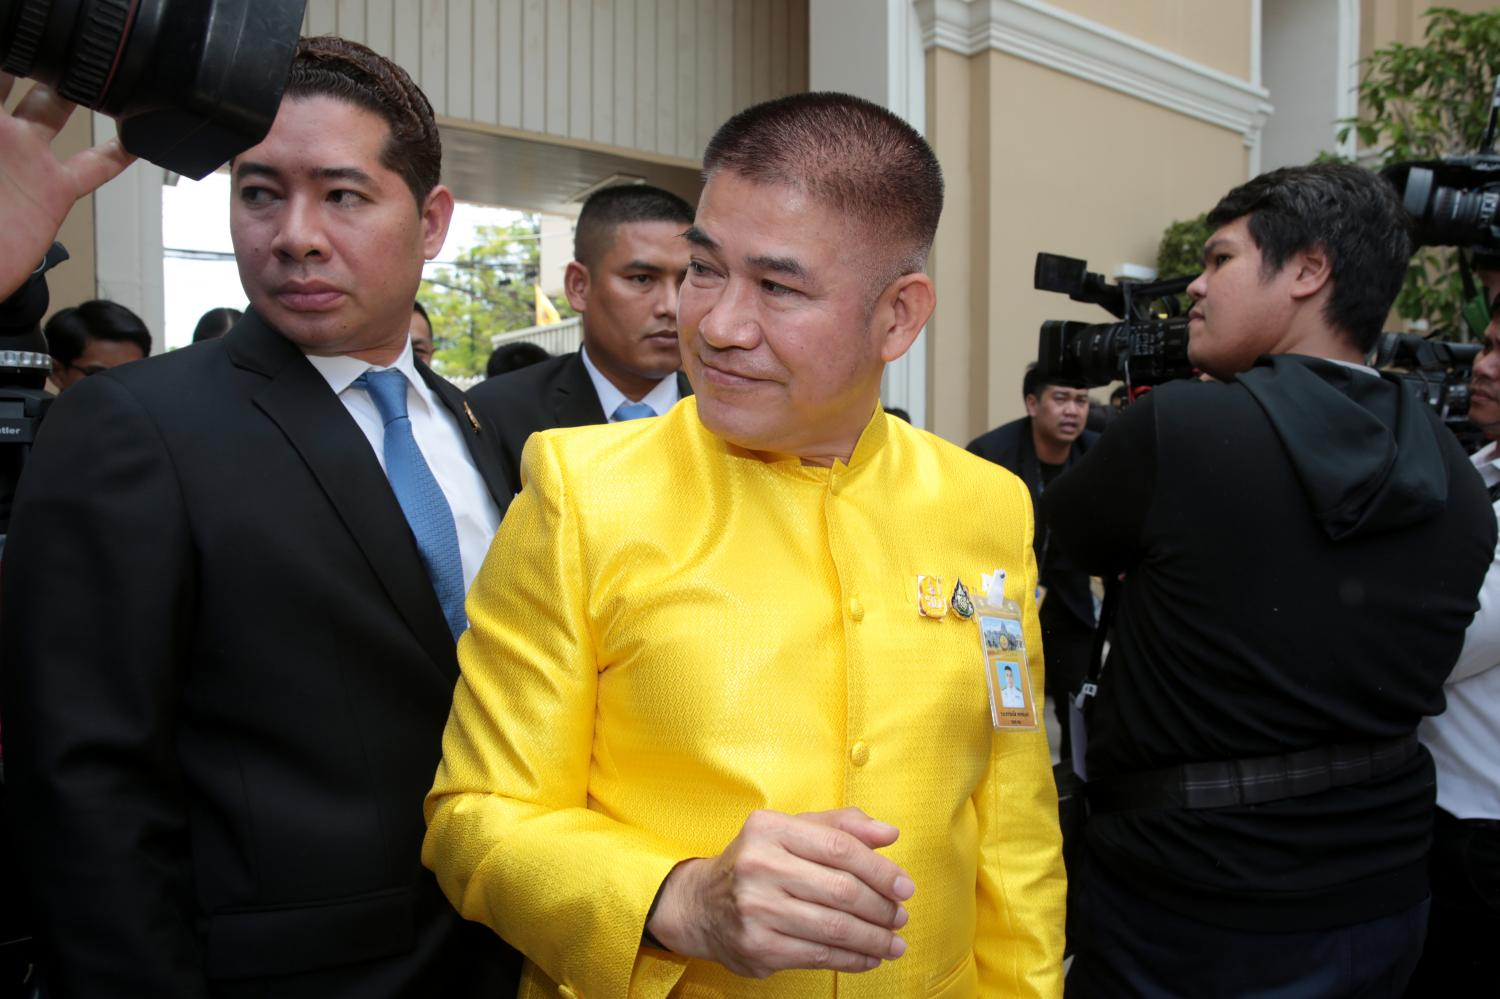 Deputy Agriculture and Cooperatives Minister, Thamanat Prompow, dismissed the 'Sydney Morning Herald' report which painted a vivid detail of his criminal past, saying he was 'in the wrong place at the wrong time'. CHANAT KATANYU